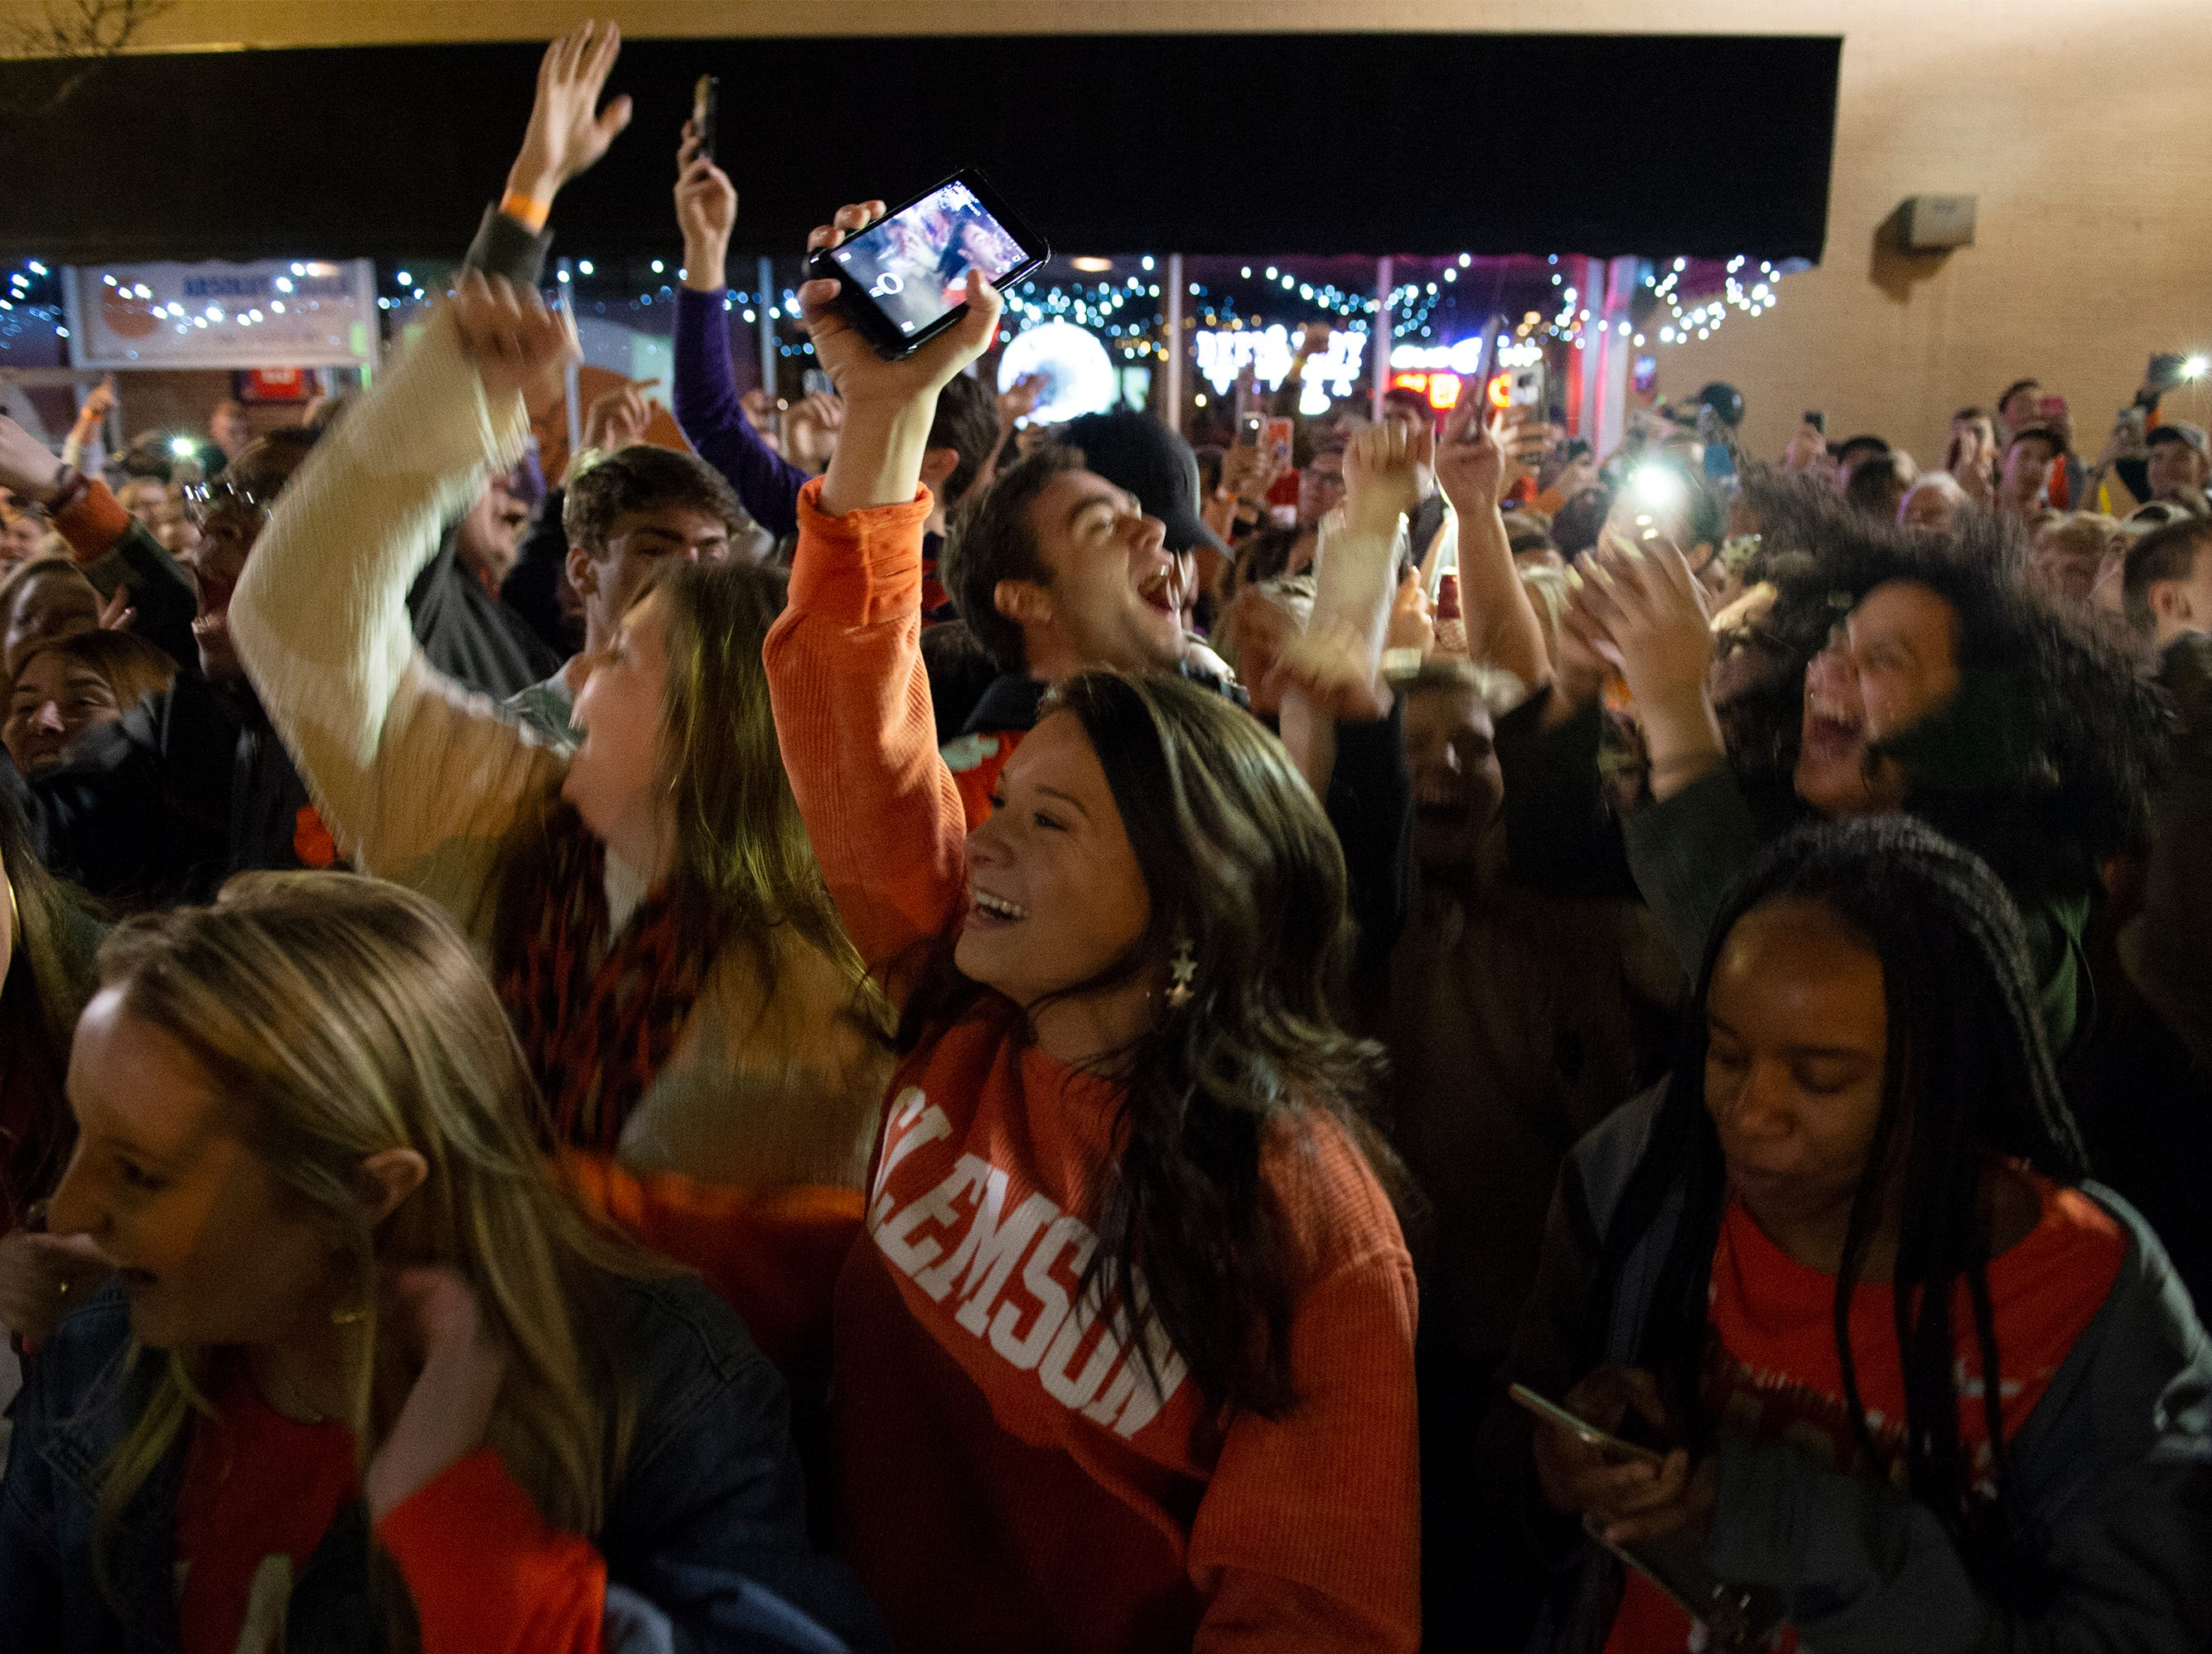 Clemson fans celebrate Clemson's win in the College Football Playoff National Championship Monday, Jan. 7, 2019. Thousands of fans attended the match party on College Avenue in Clemson.